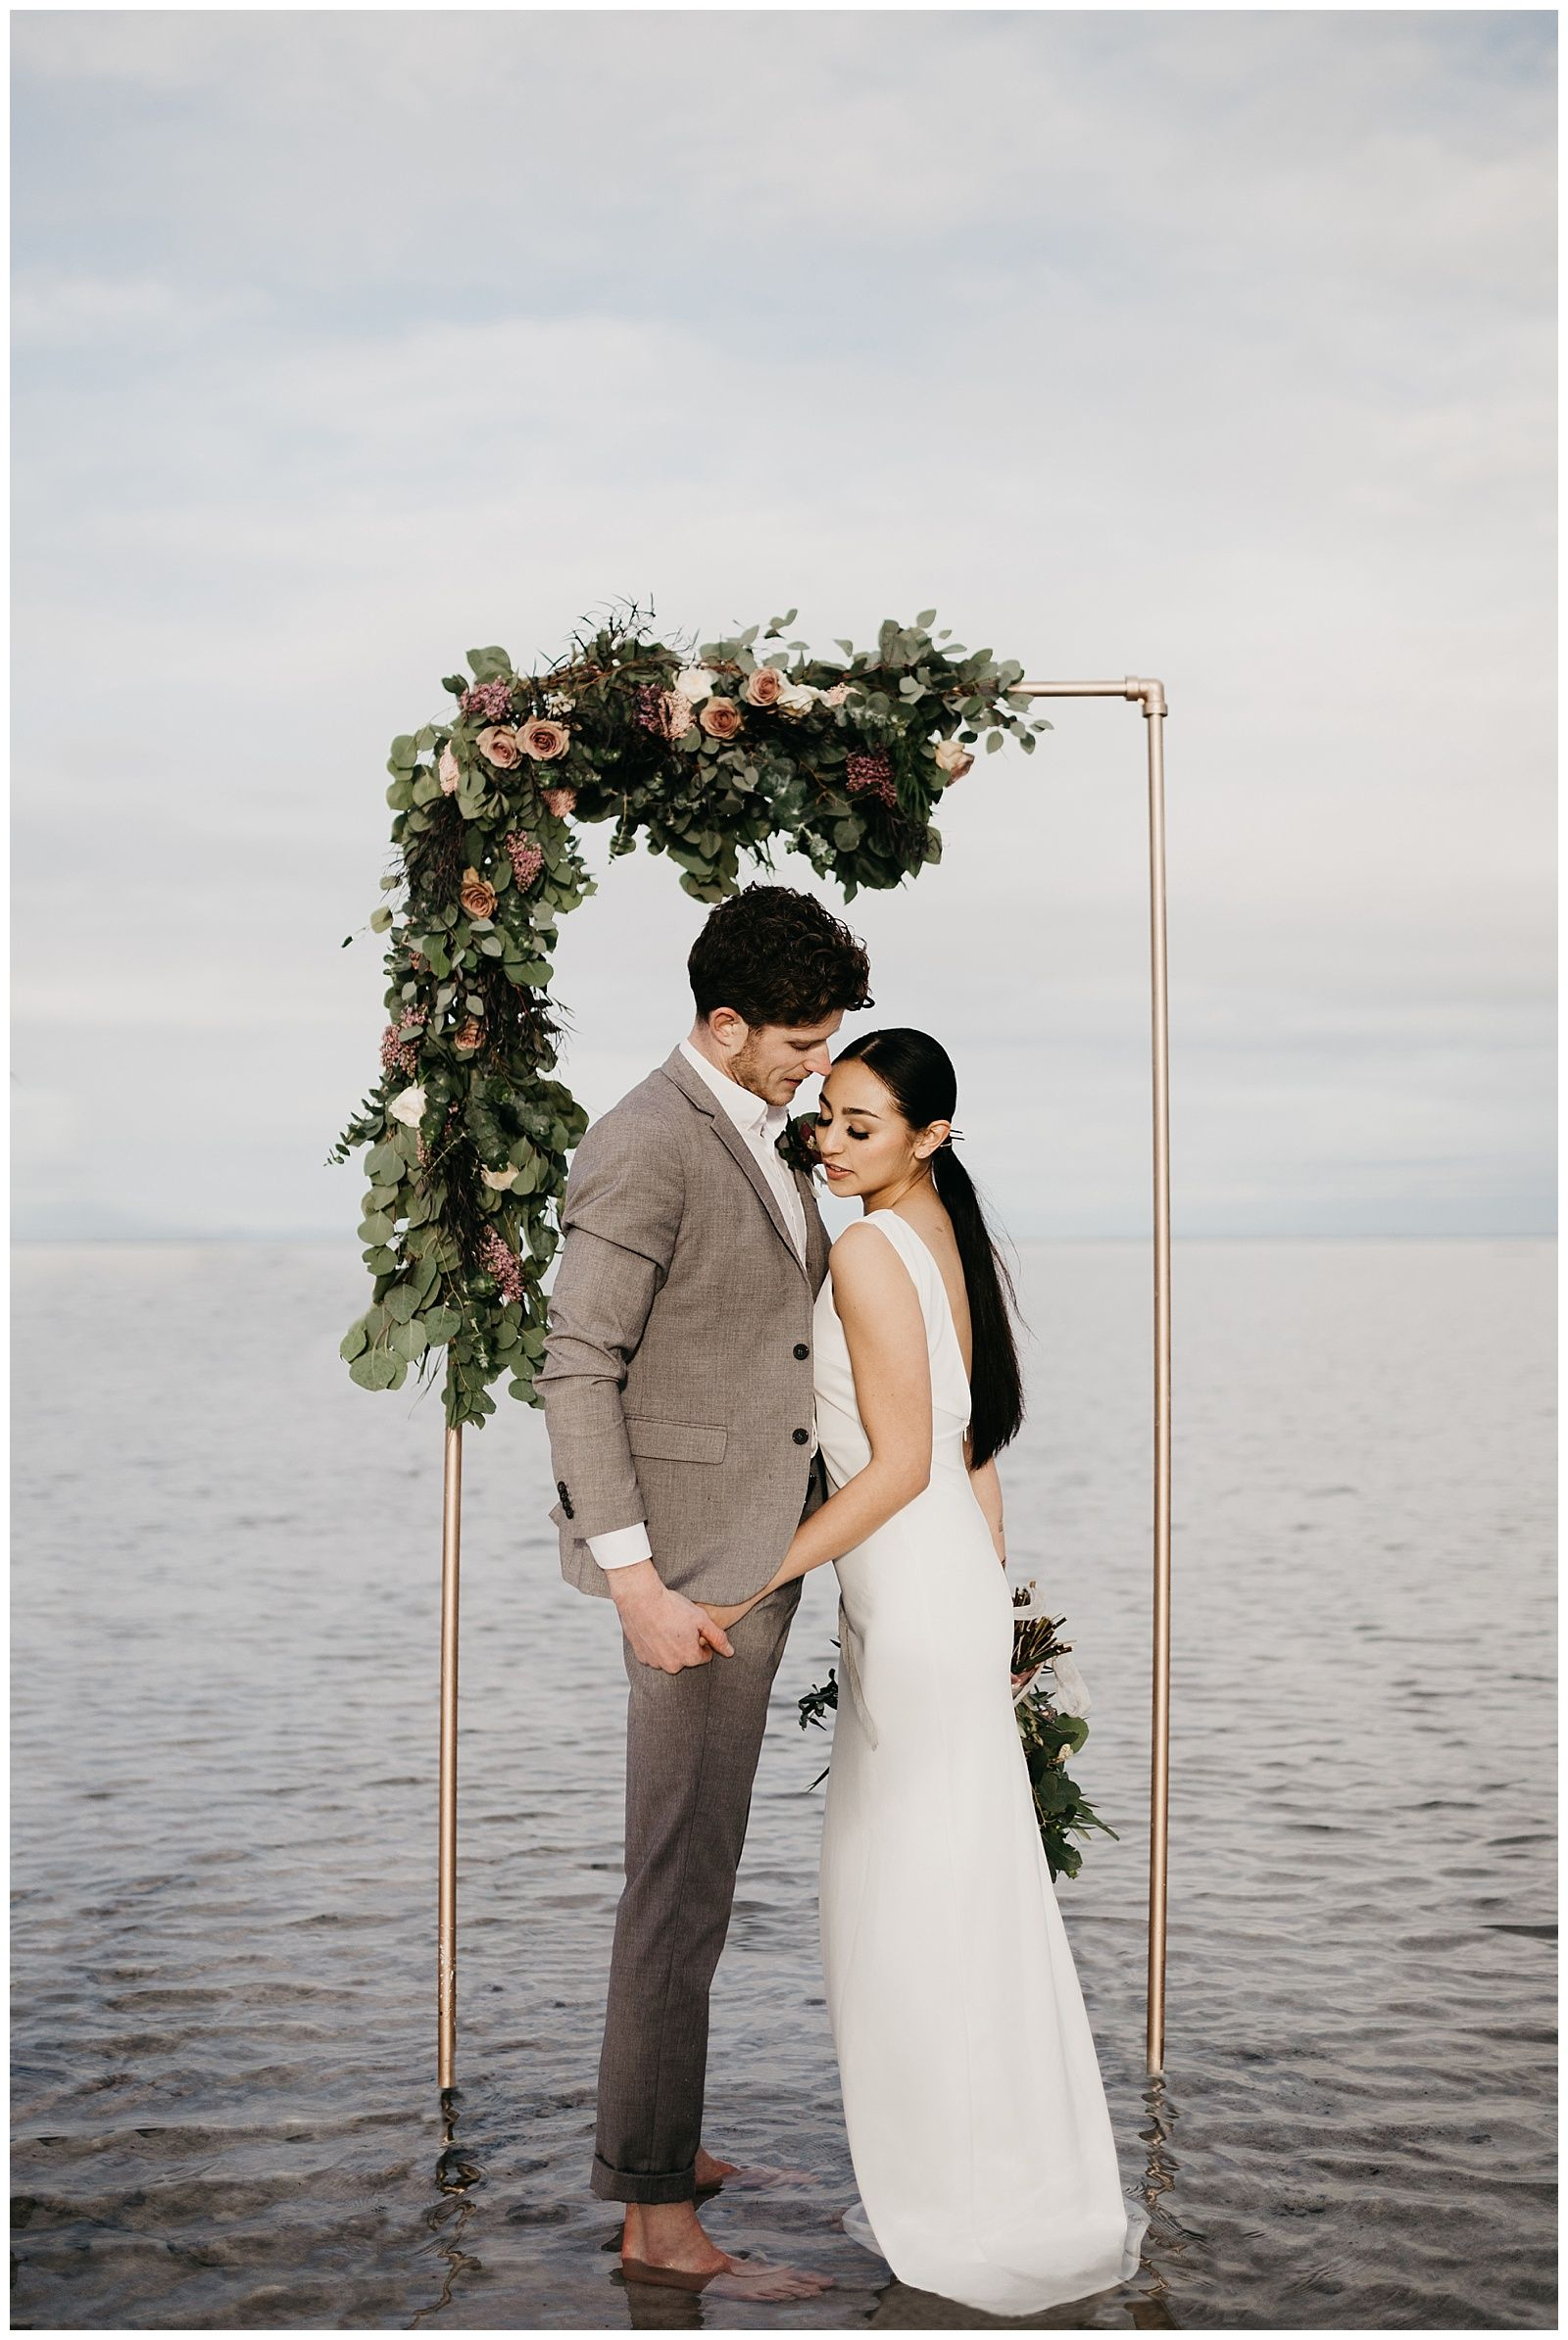 Nicole Aston Photography Utah Wedding Elopement Photographer Bonneville Salt Flats